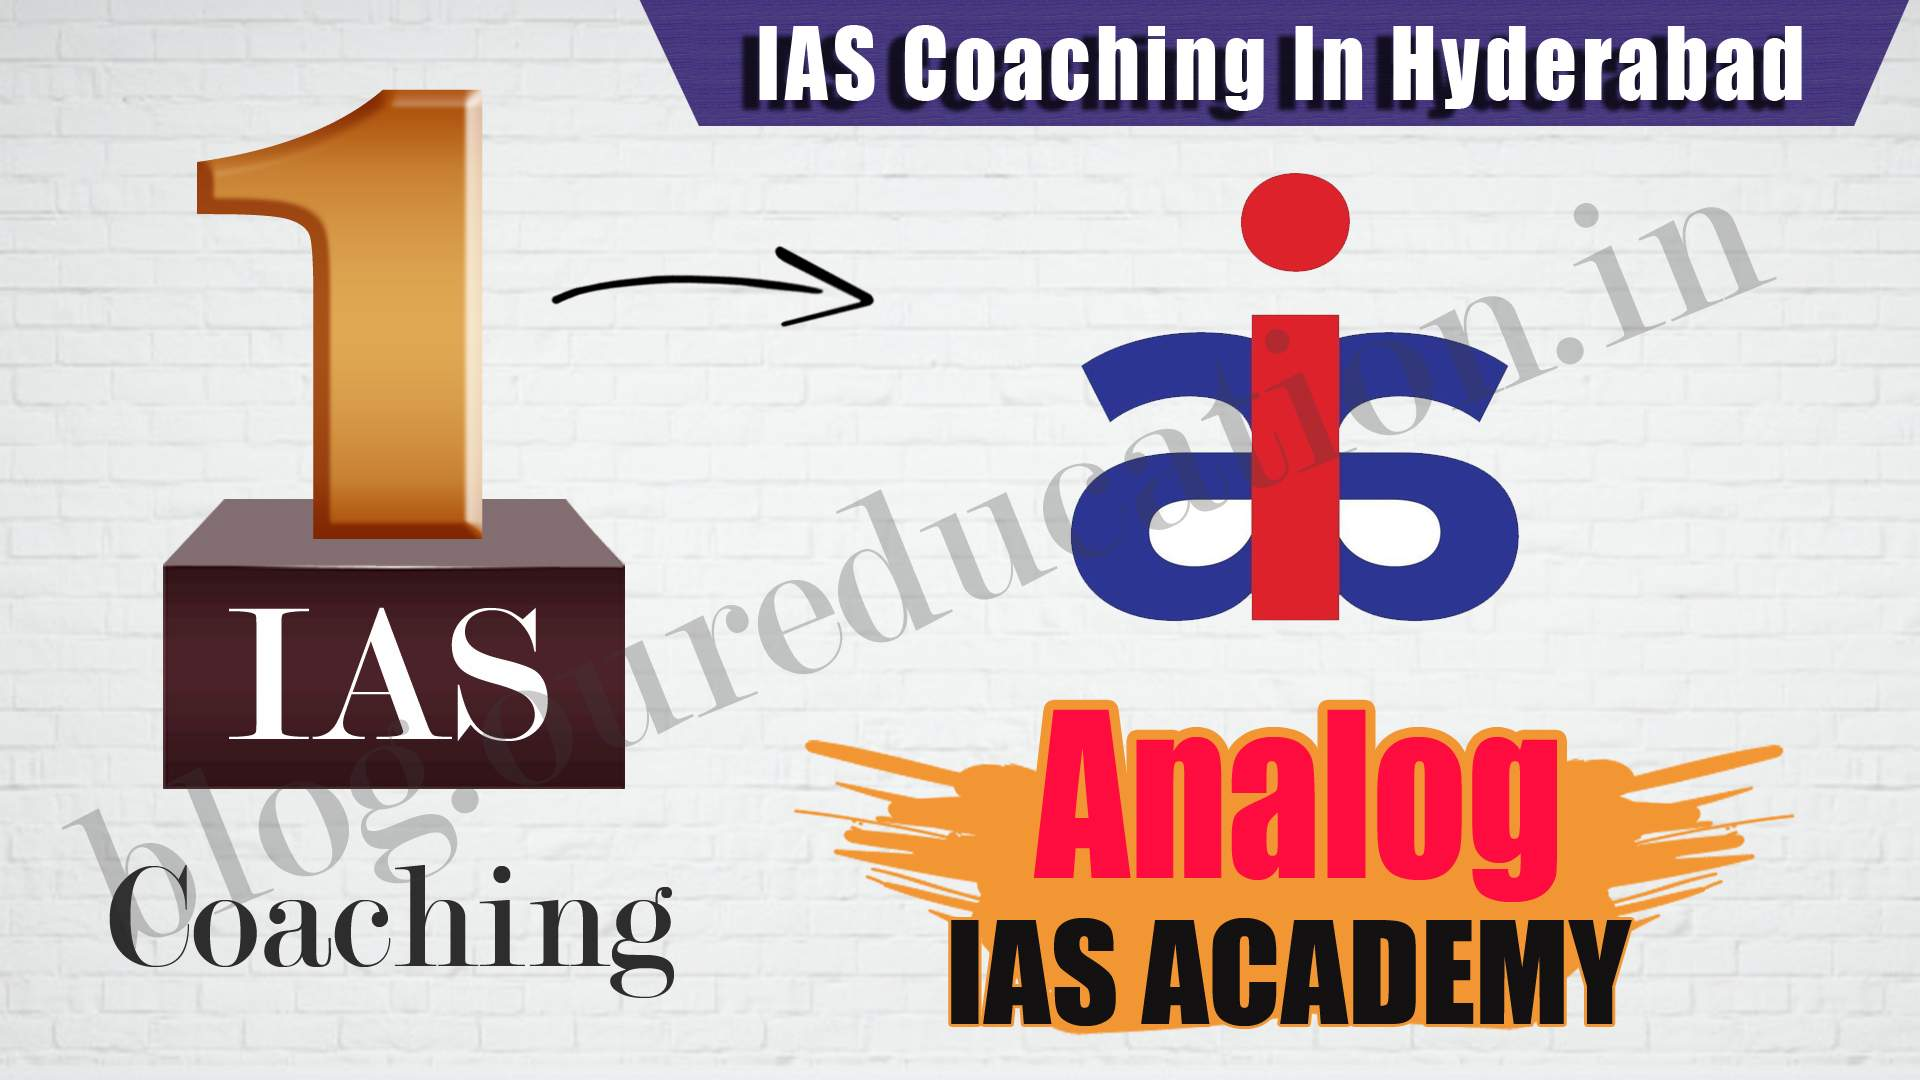 Top 10 IAS Coaching Institutes in Hyderabad - UPSC Toppers